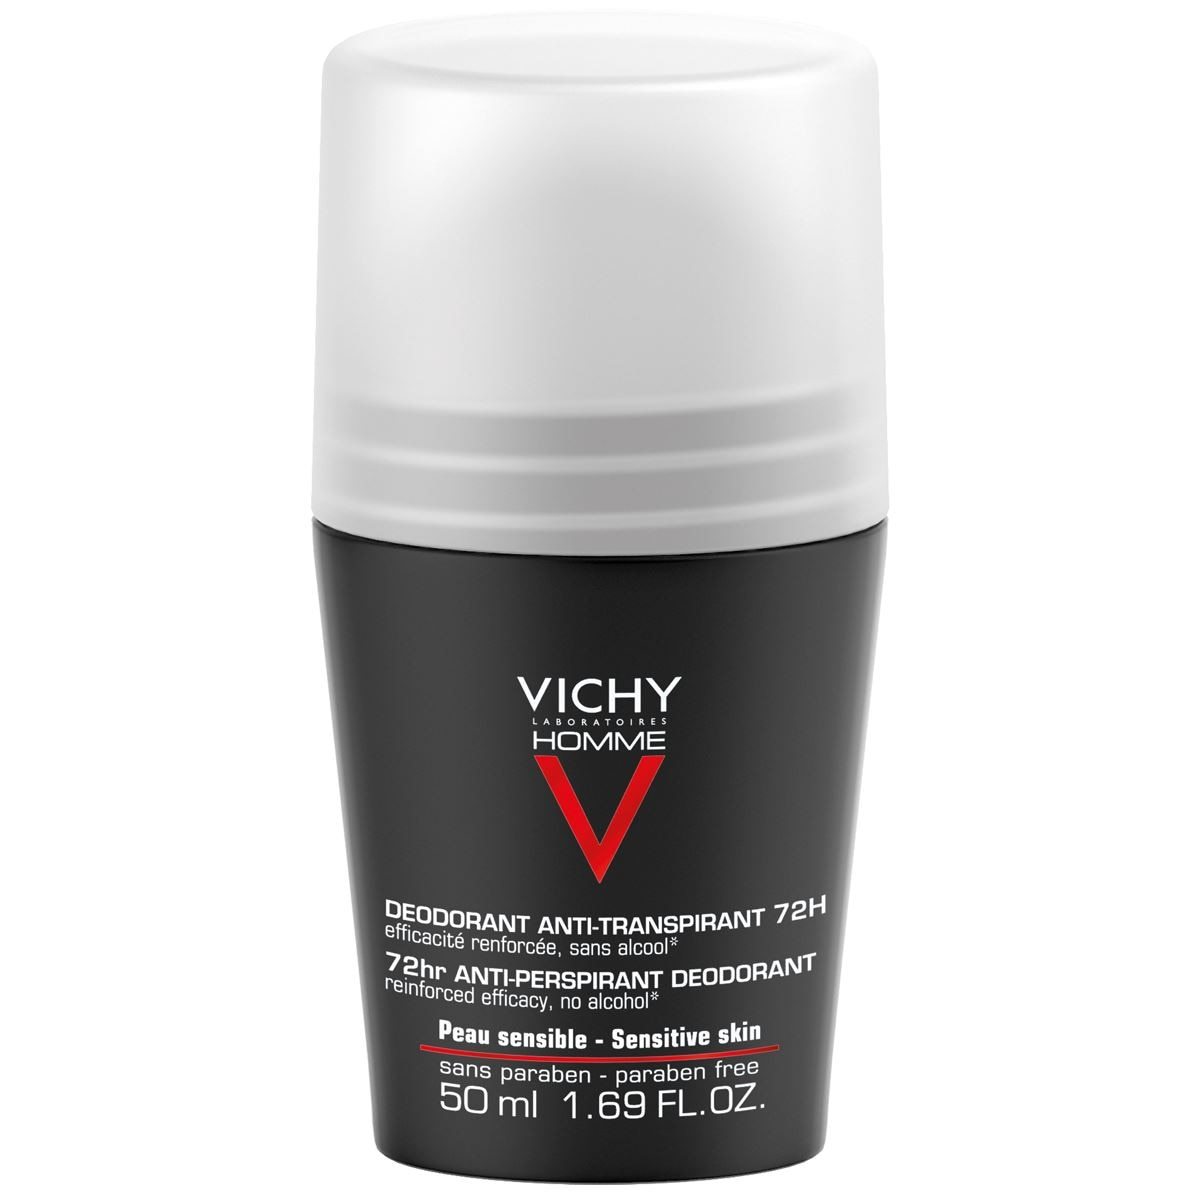 Vh deo regulación intensa 50ml.  - Sanborns